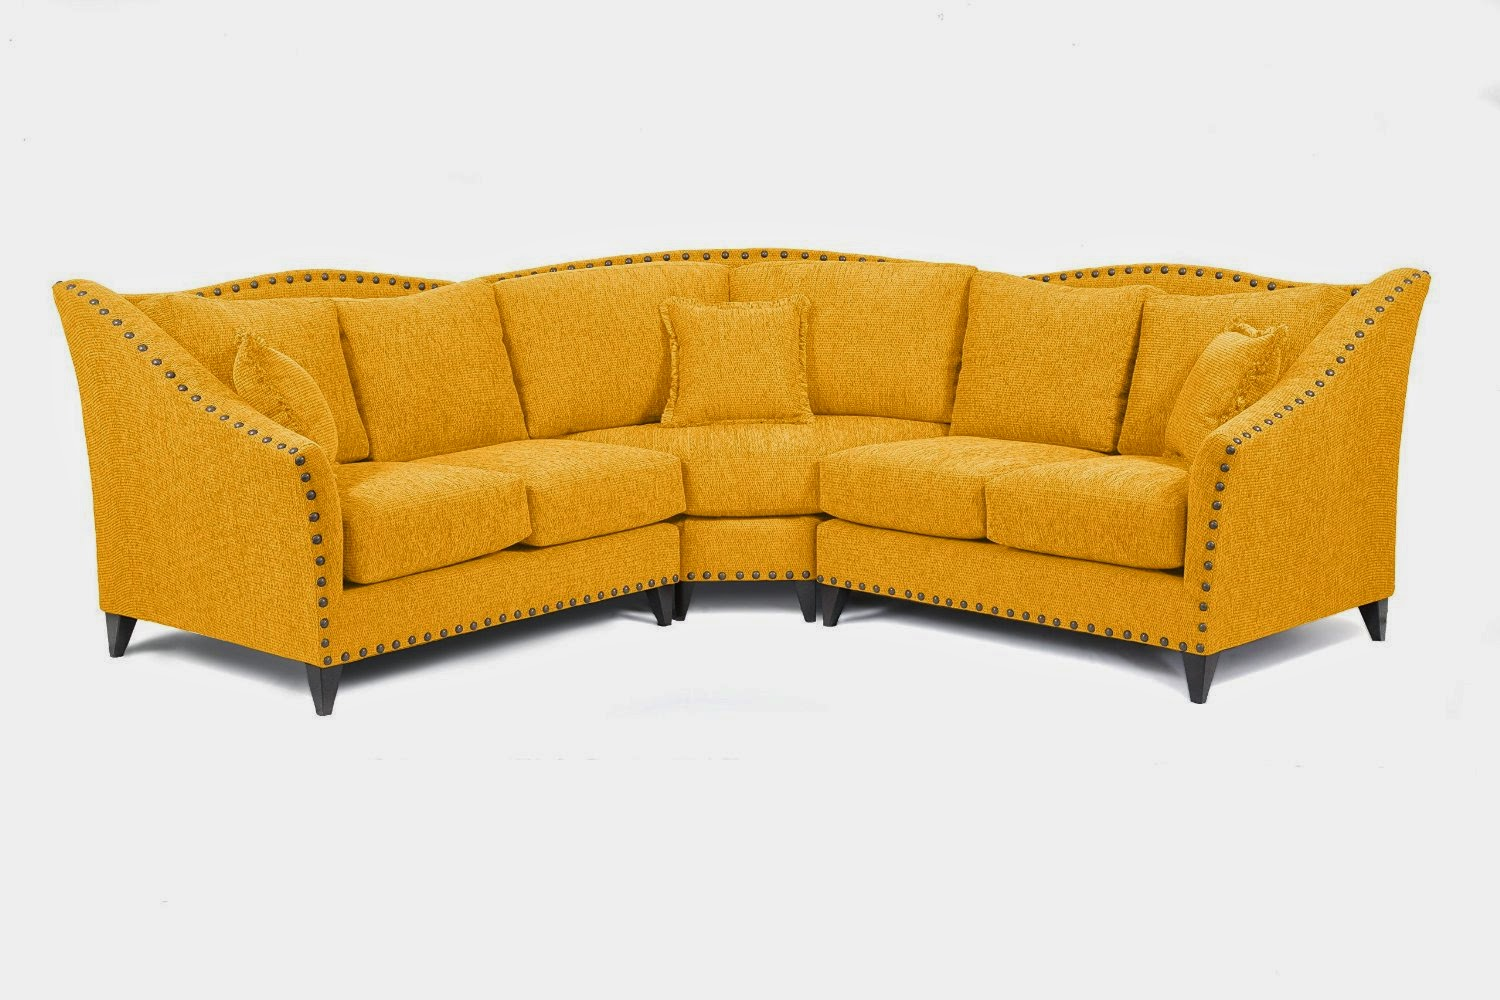 Small Curved Sectional Sofa Small Curved Sectional Sofa Home Furniture Design Modern Curved